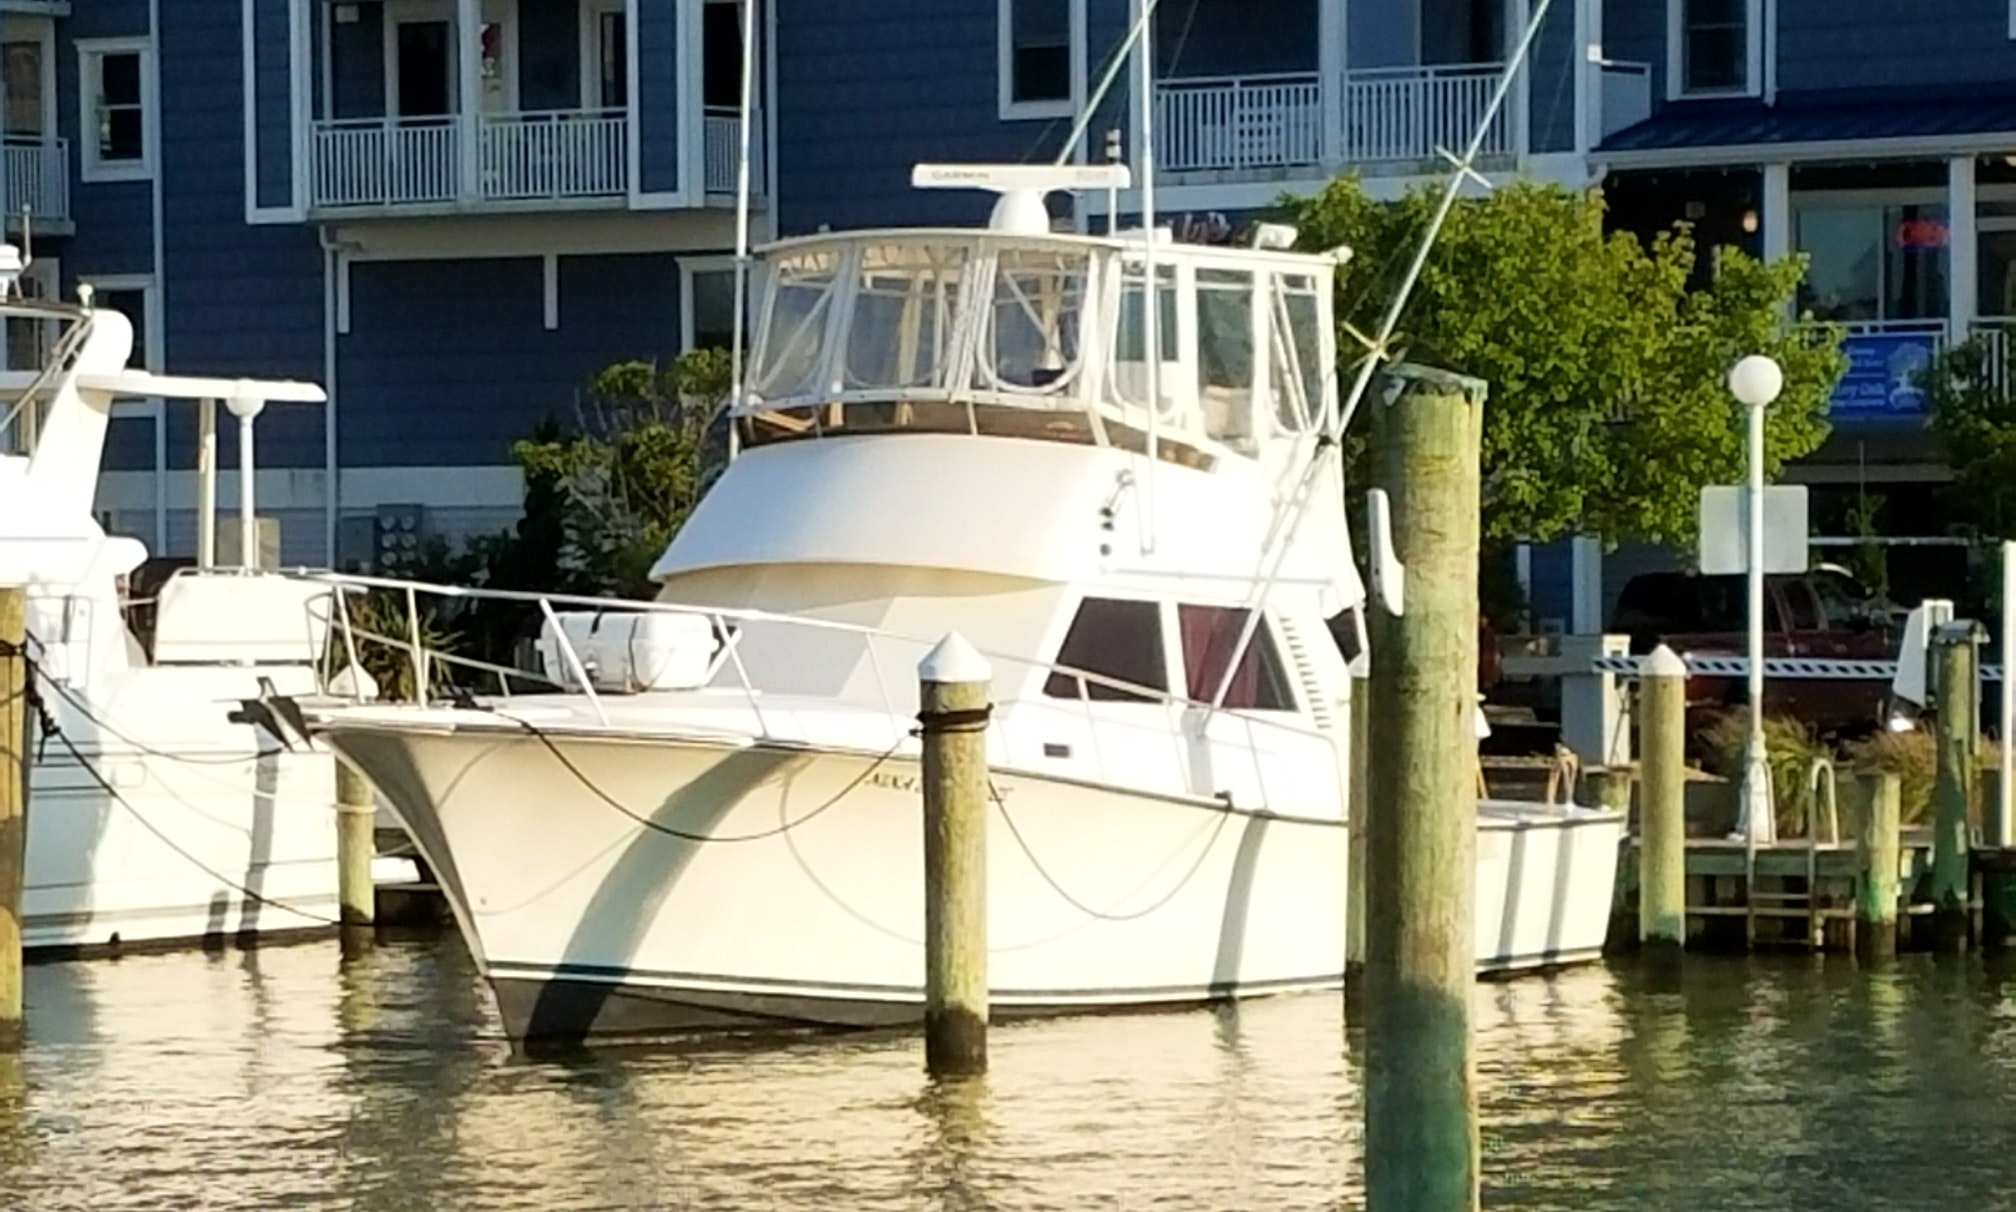 Image result for Rentals Boat in Ocean City, Maryland